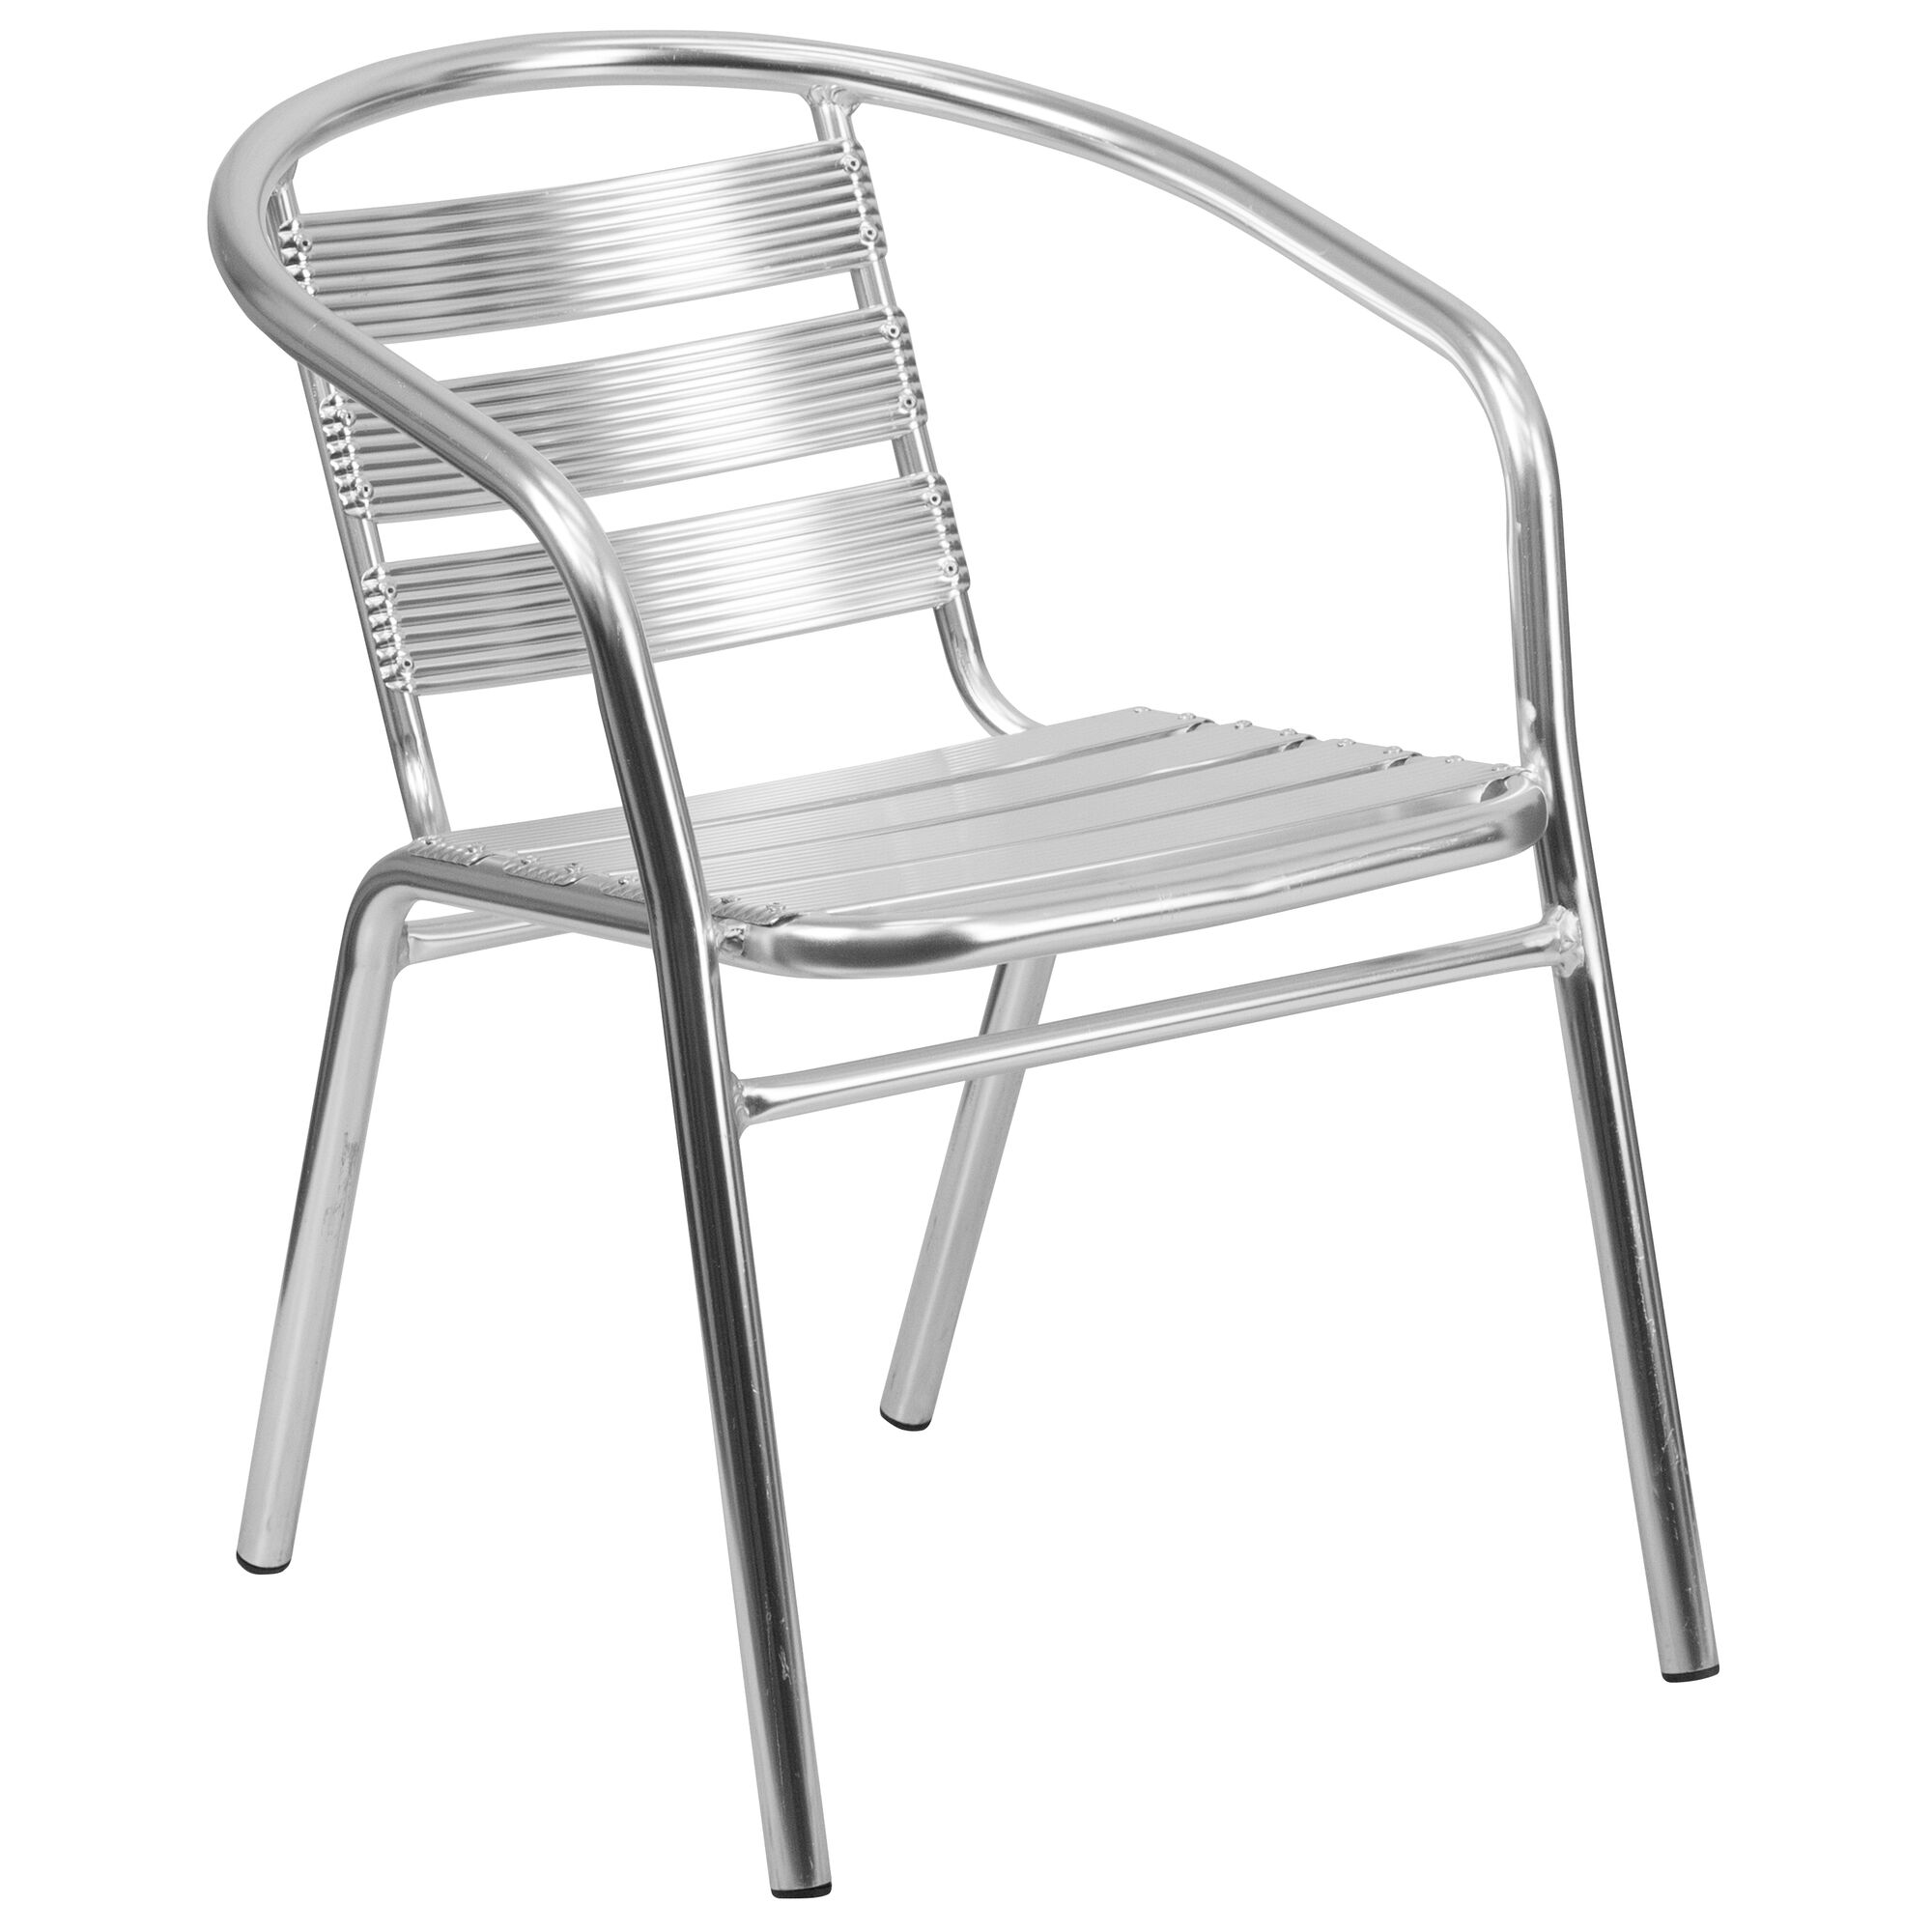 chairs terra charm blades design aluminum outdoor restaurant chair